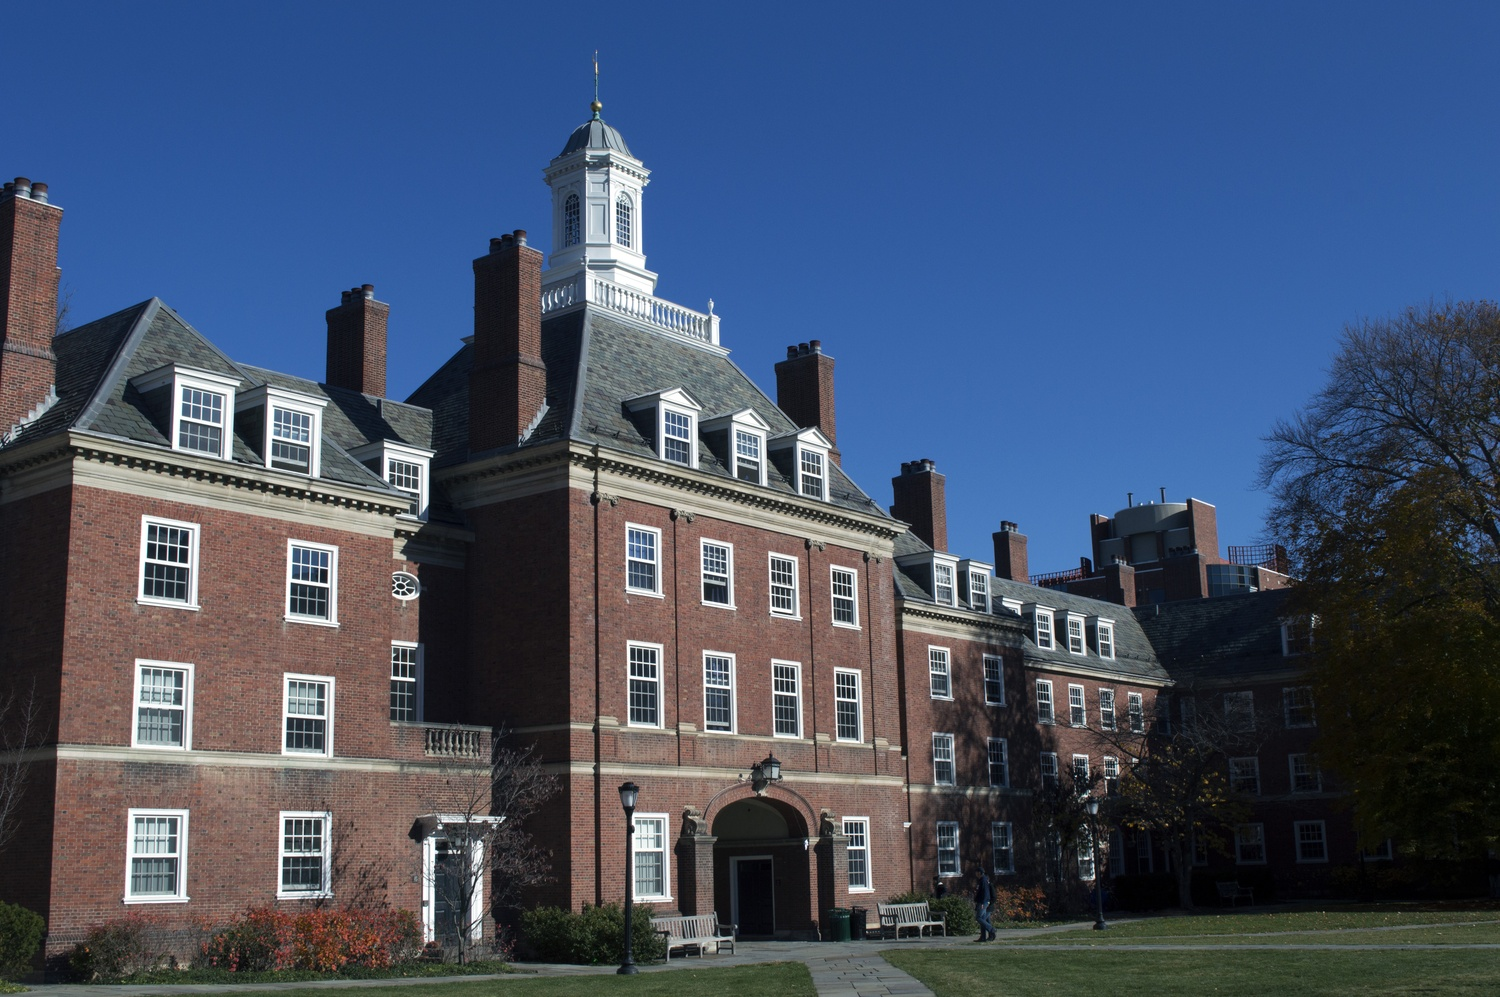 Silliman College, the largest residential college at Yale University.  At Yale, most freshmen live in freshman housing on Old Campus, clustered according to their assignments.  Freshmen assigned to Silliman and nearby Timothy Dwight instead live in their College among upperclassmen.